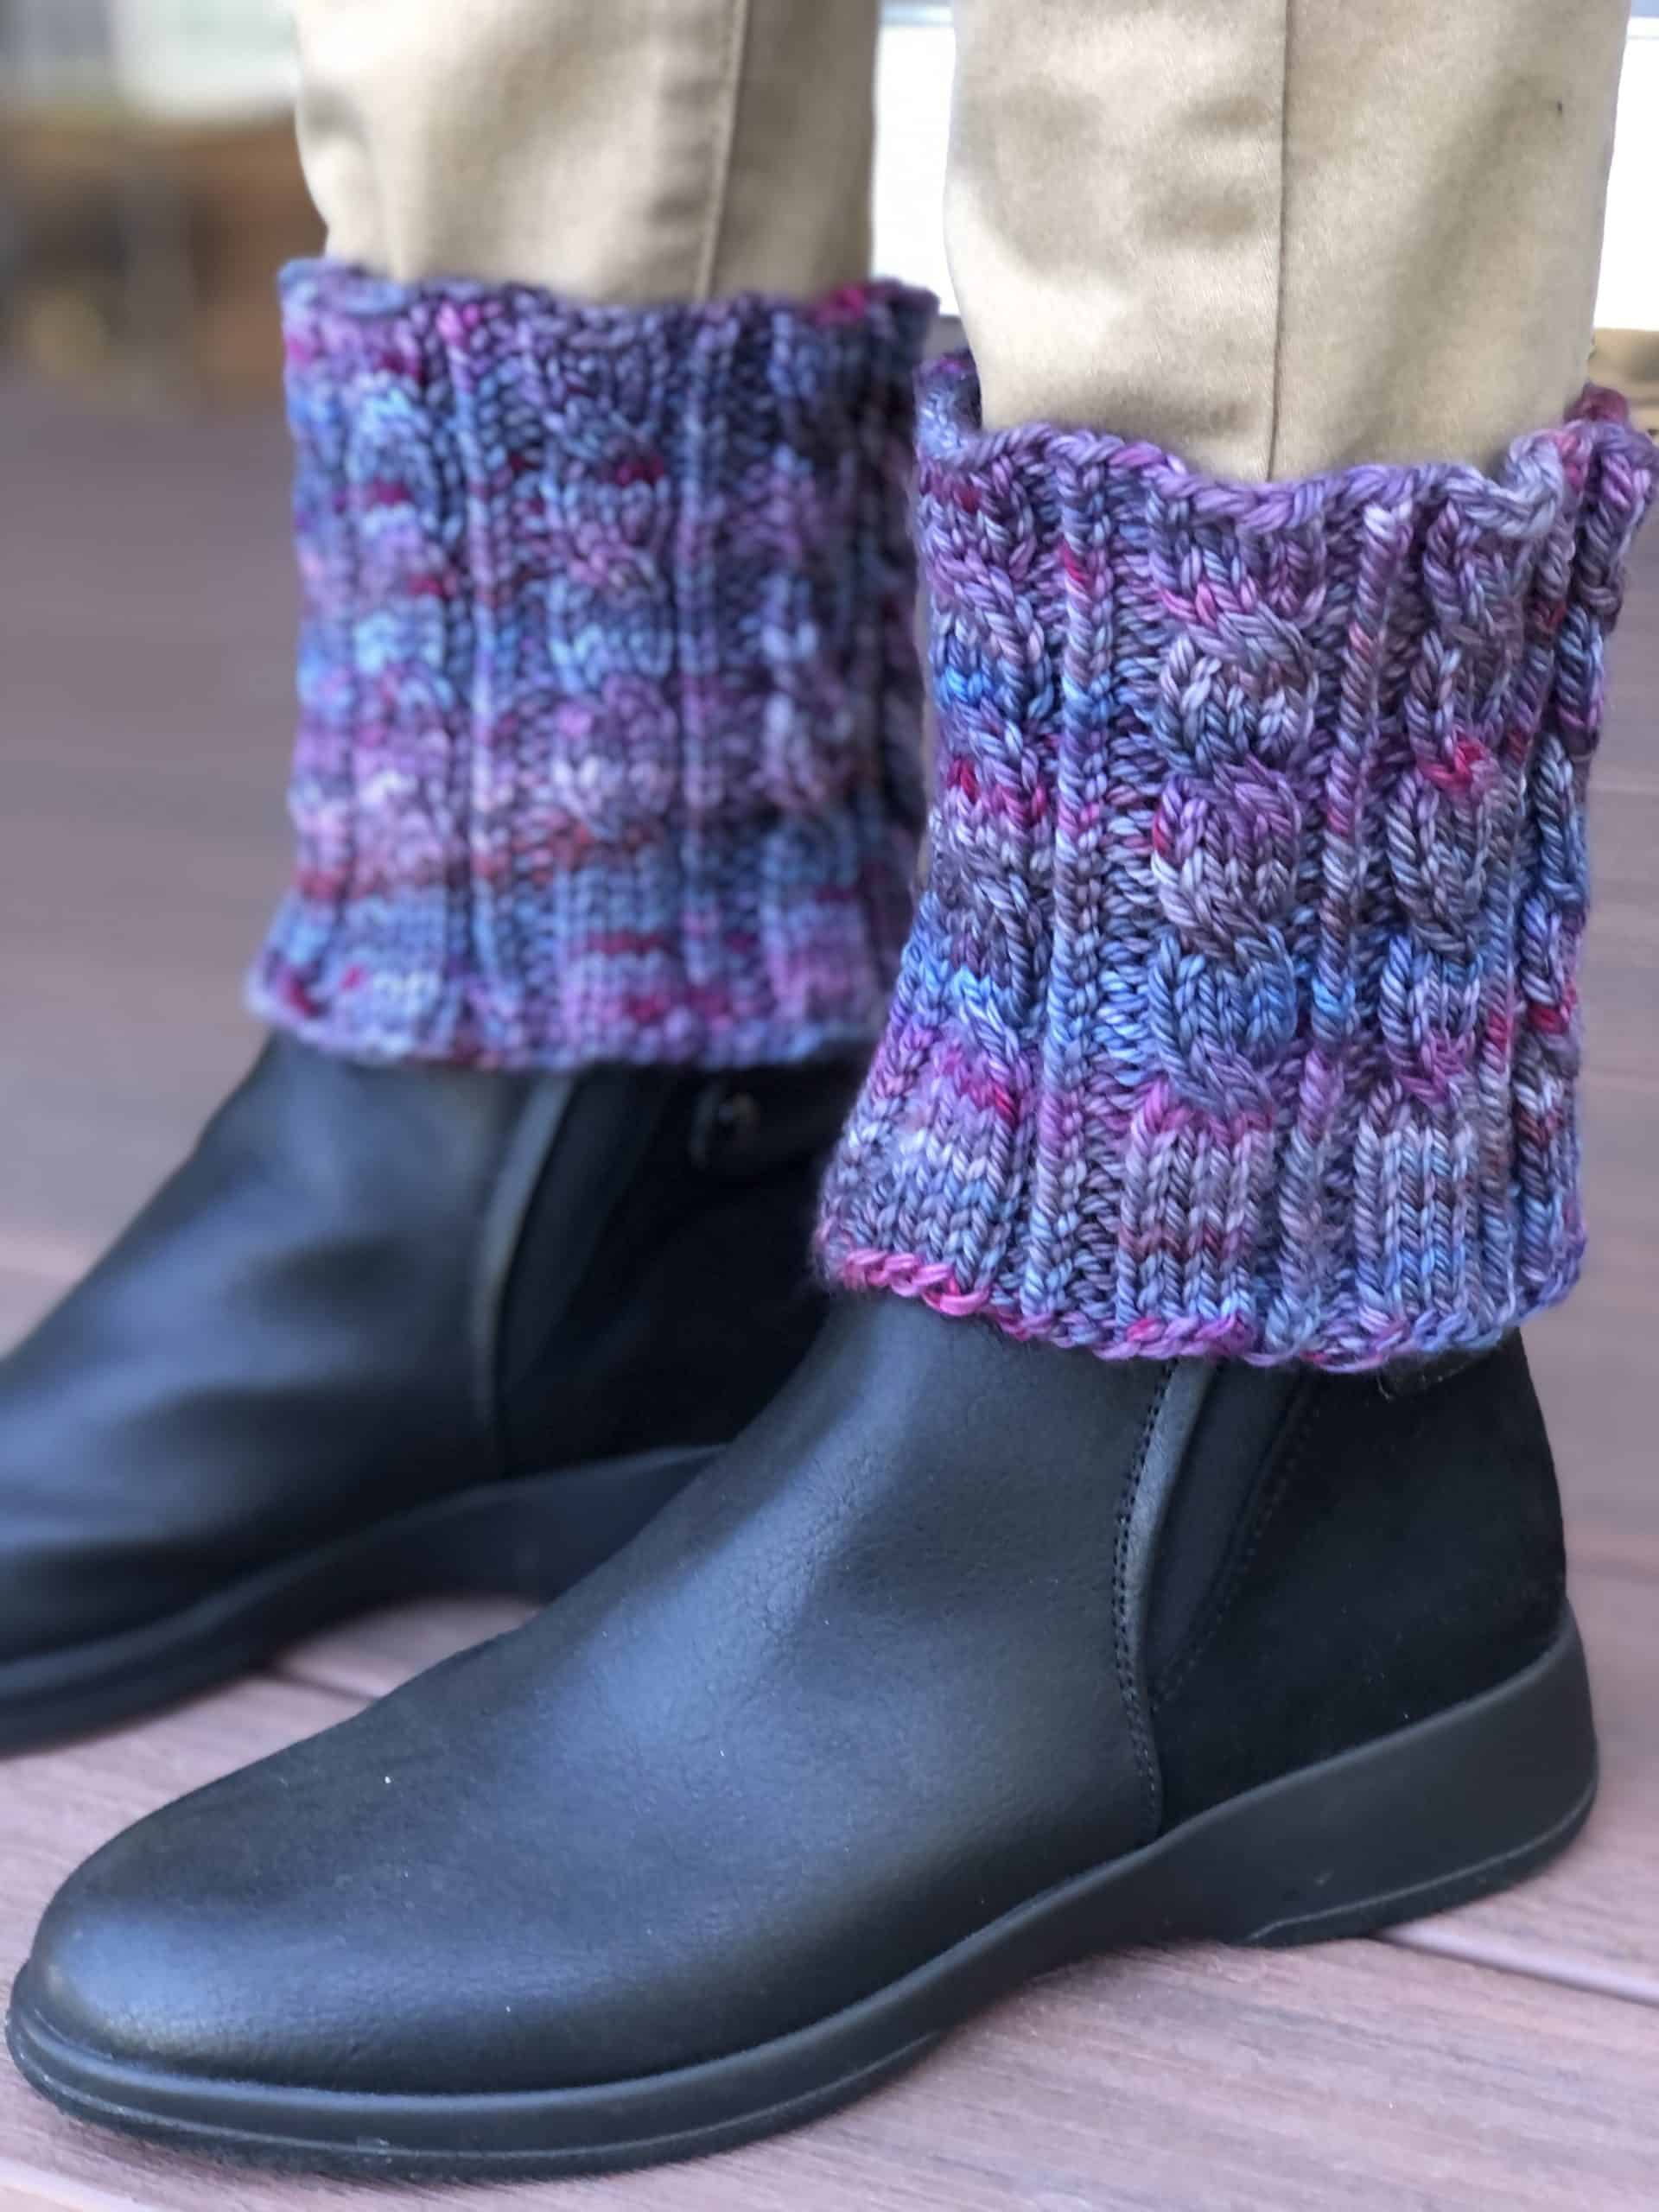 Boots with purple cabled cuffs.